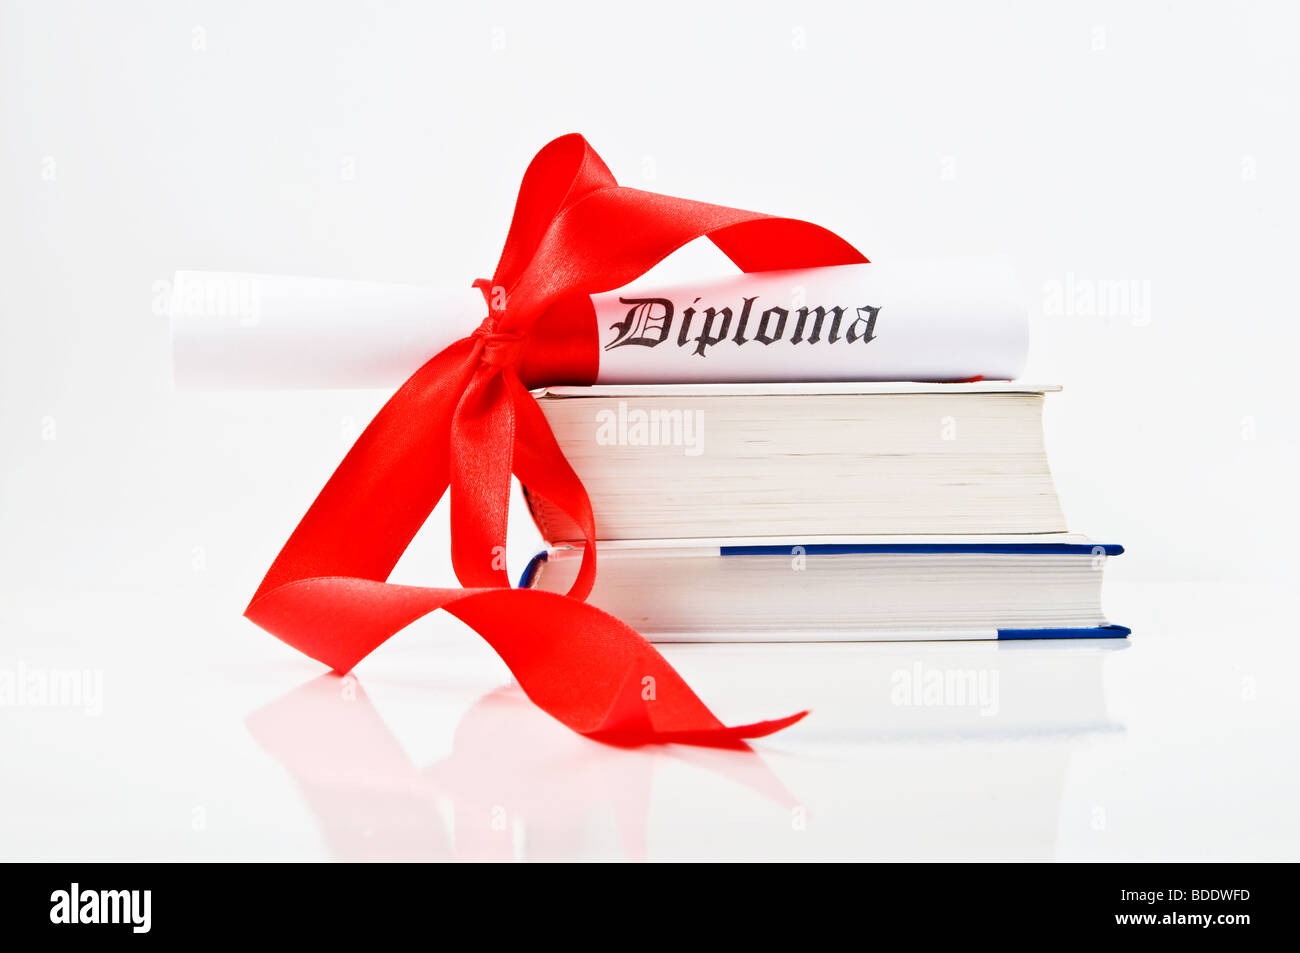 Diploma with red ribbon and books on white background - Stock Image